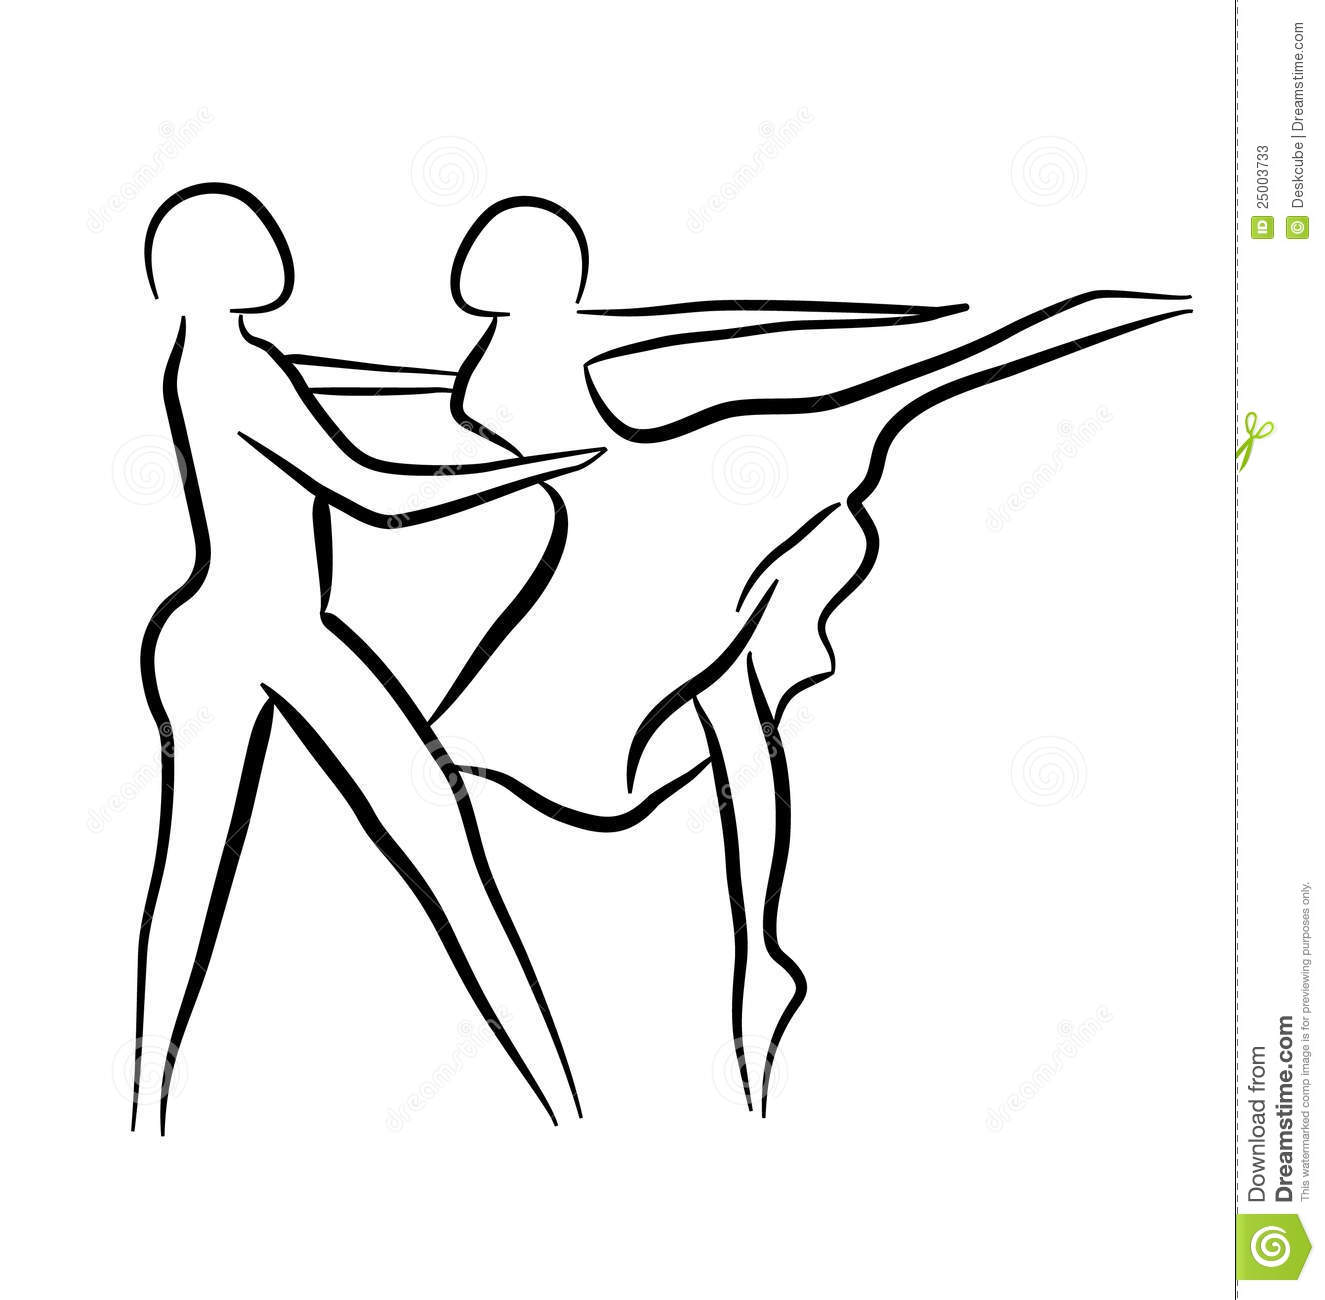 Line Drawing Couple : Couple dancing sketch concept stock vector illustration